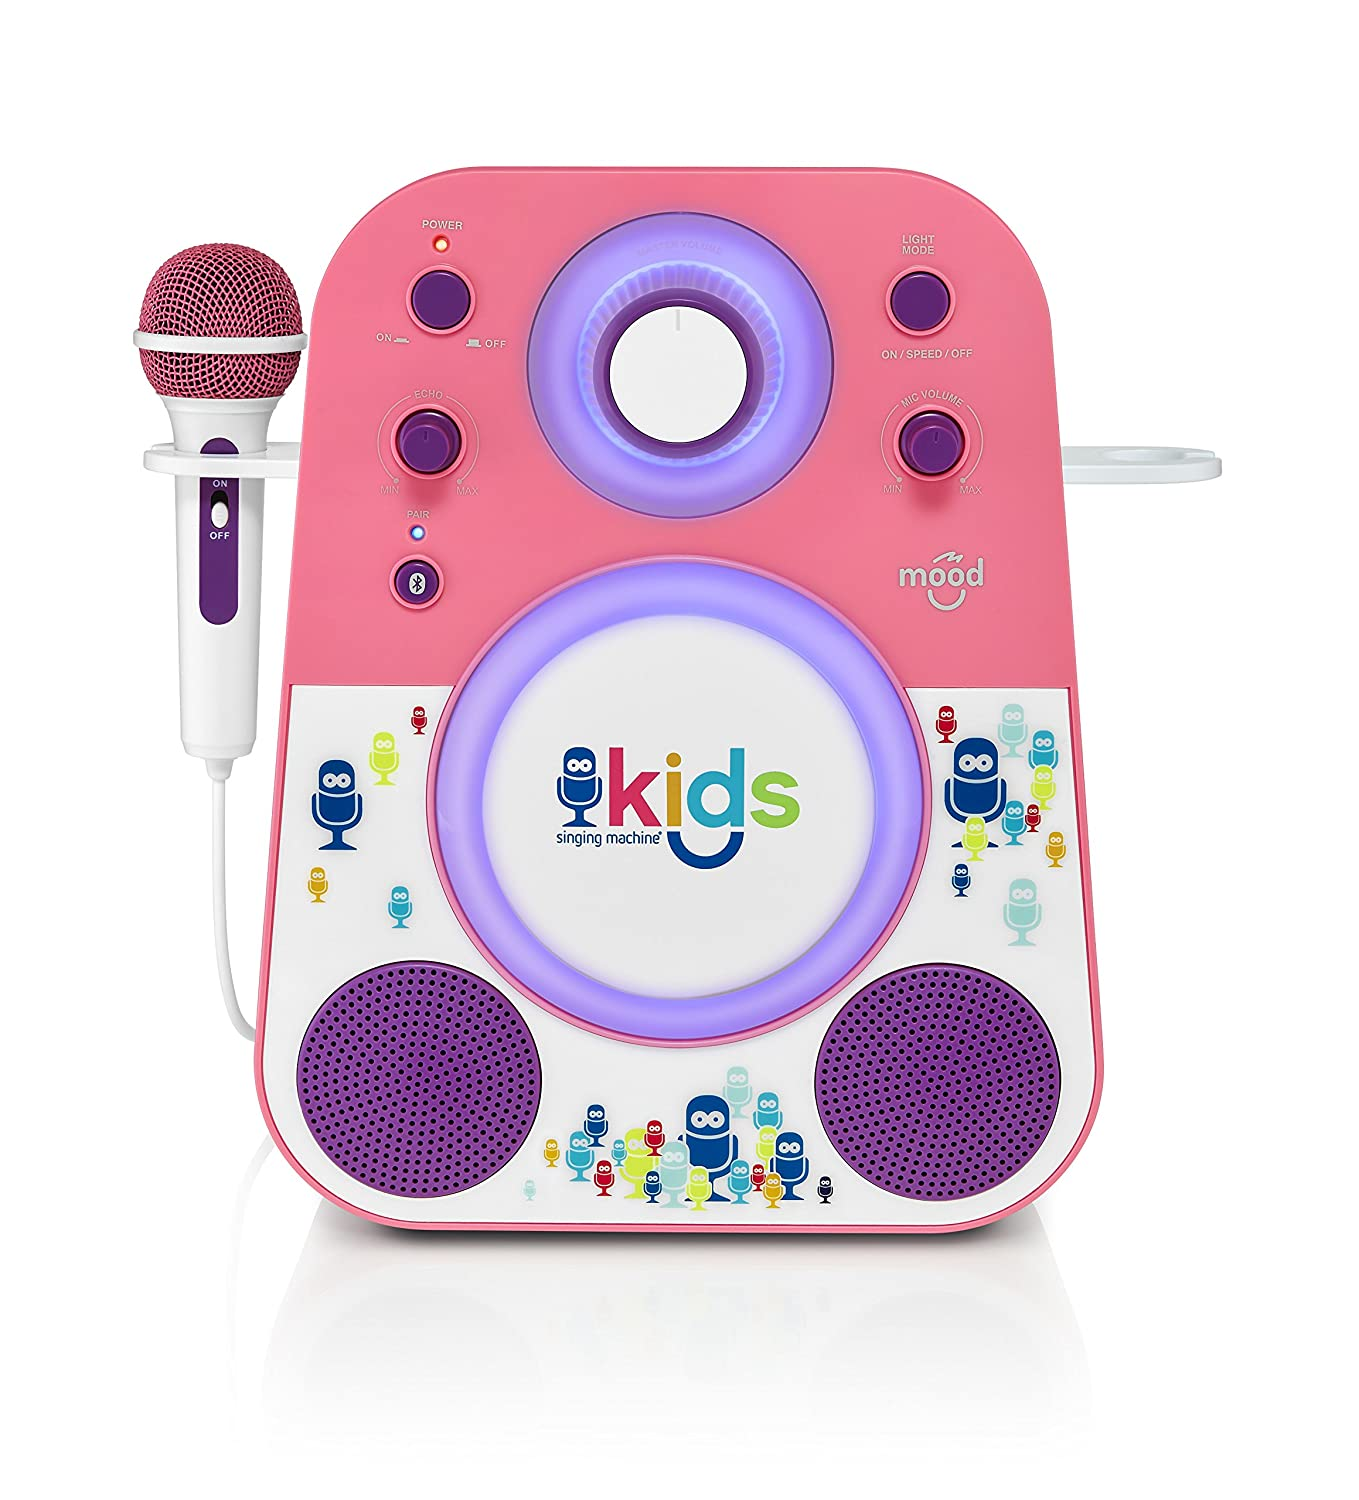 Singing Machine Kids Mood LED Glowing Bluetooth Sing-Along Speaker with Wired Youth Microphone Doubles as a Night Light